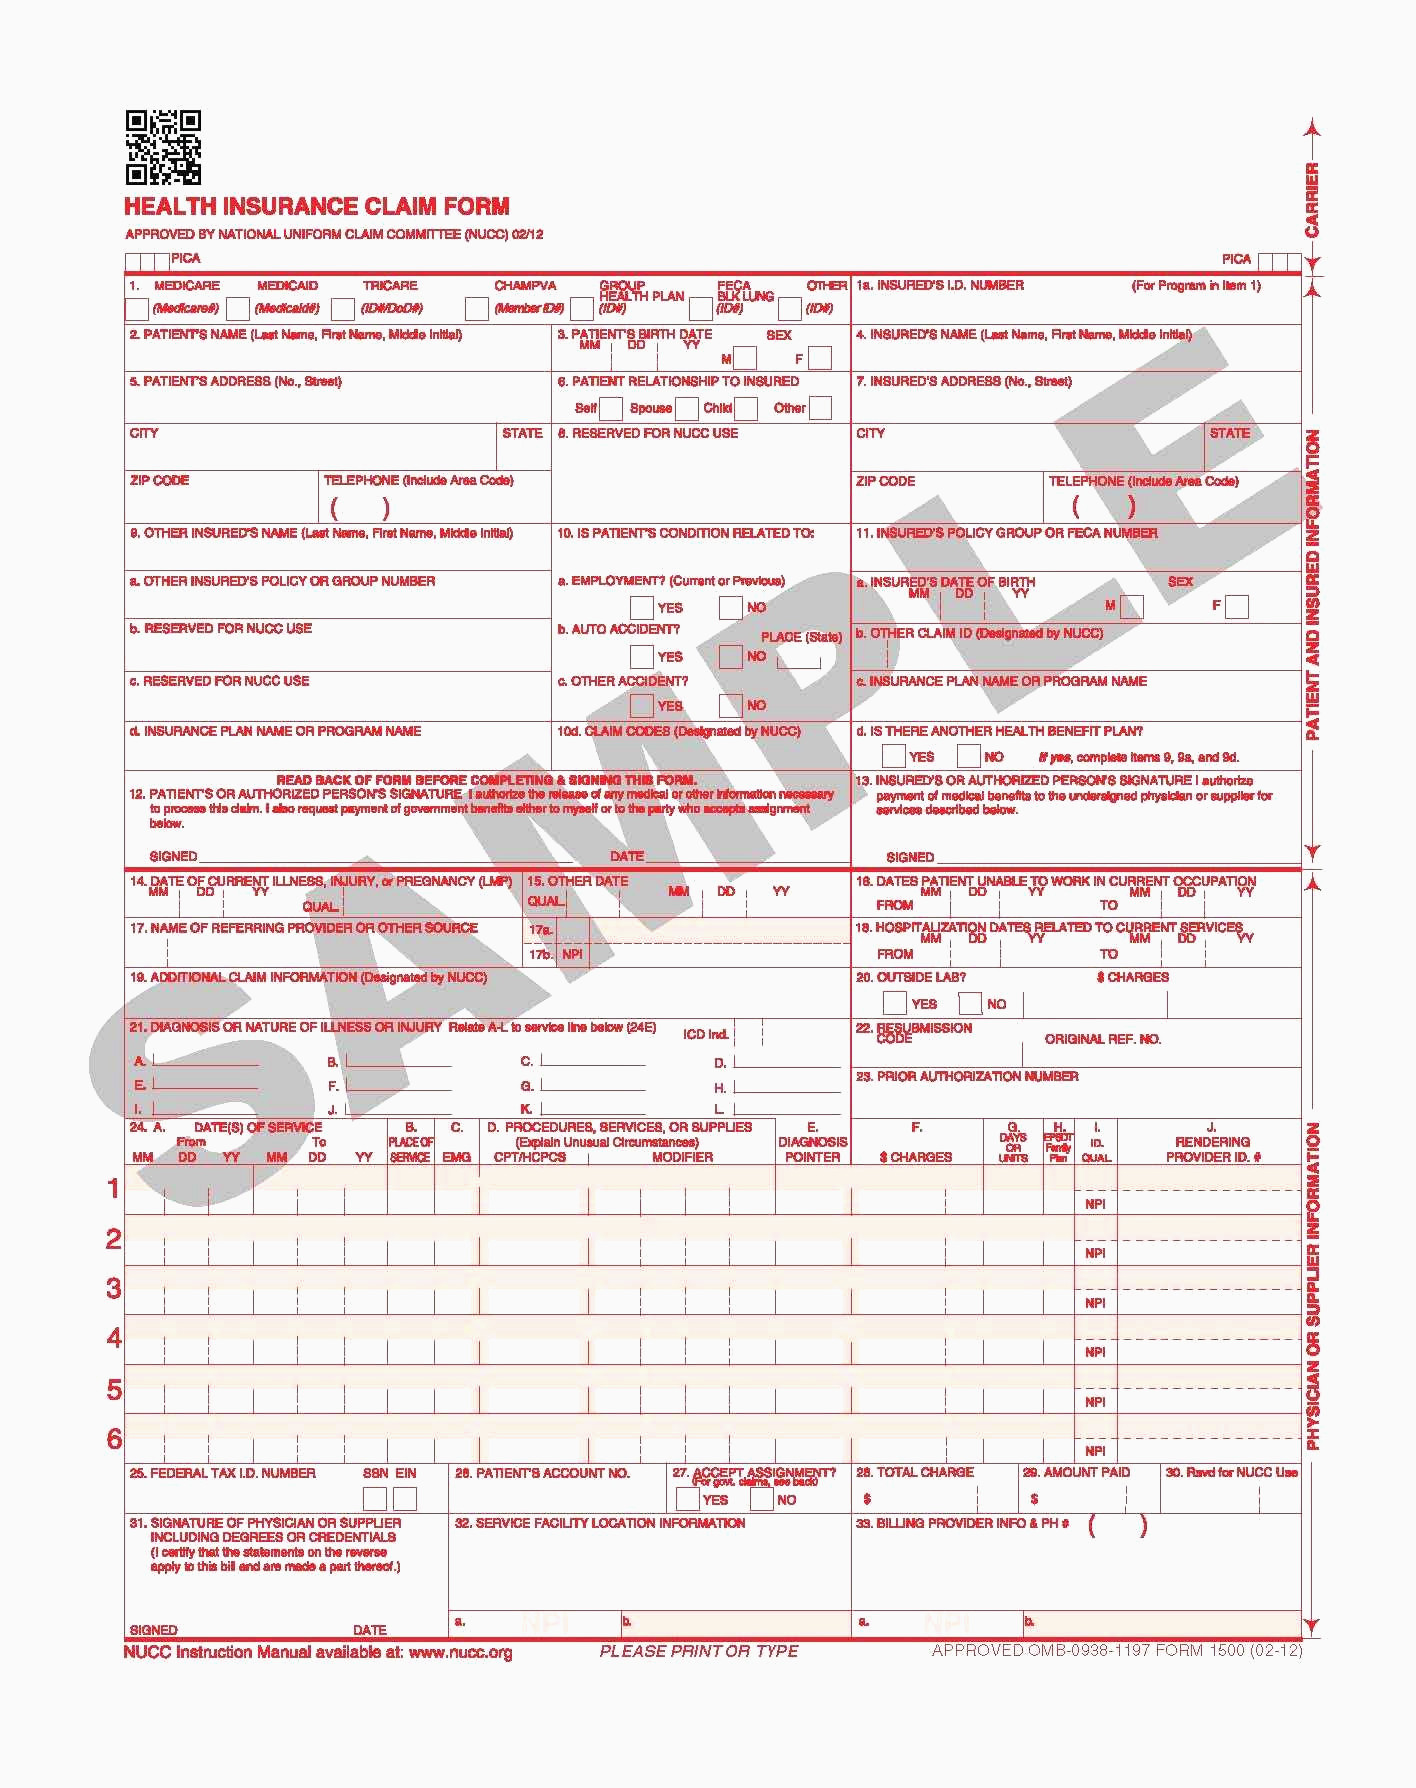 Cms 1500 Form Inspirational Sample Cms 1500 Form 02 12 As Well As 20 Unique 1500 Claim Form